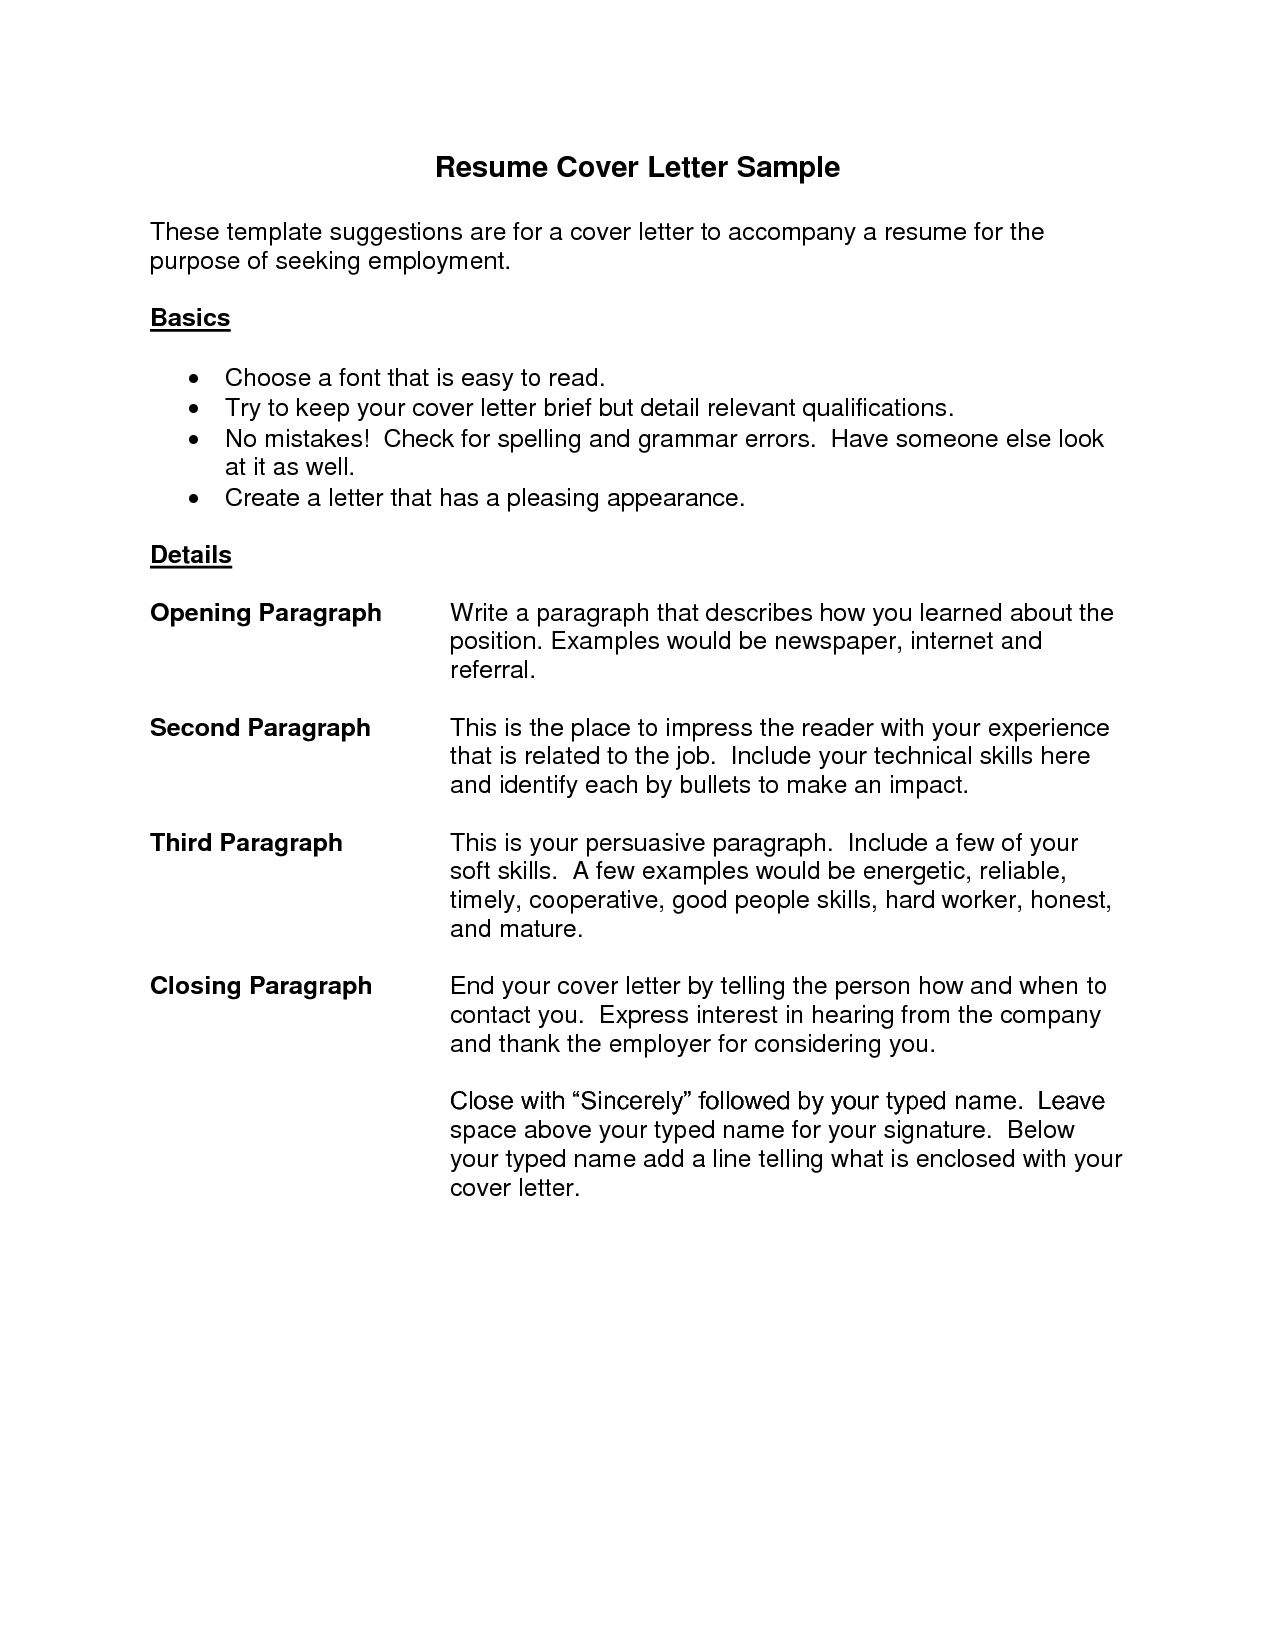 Resume Writing Examples Cover Letter Resume Best Templatesimple Cover Letter Application